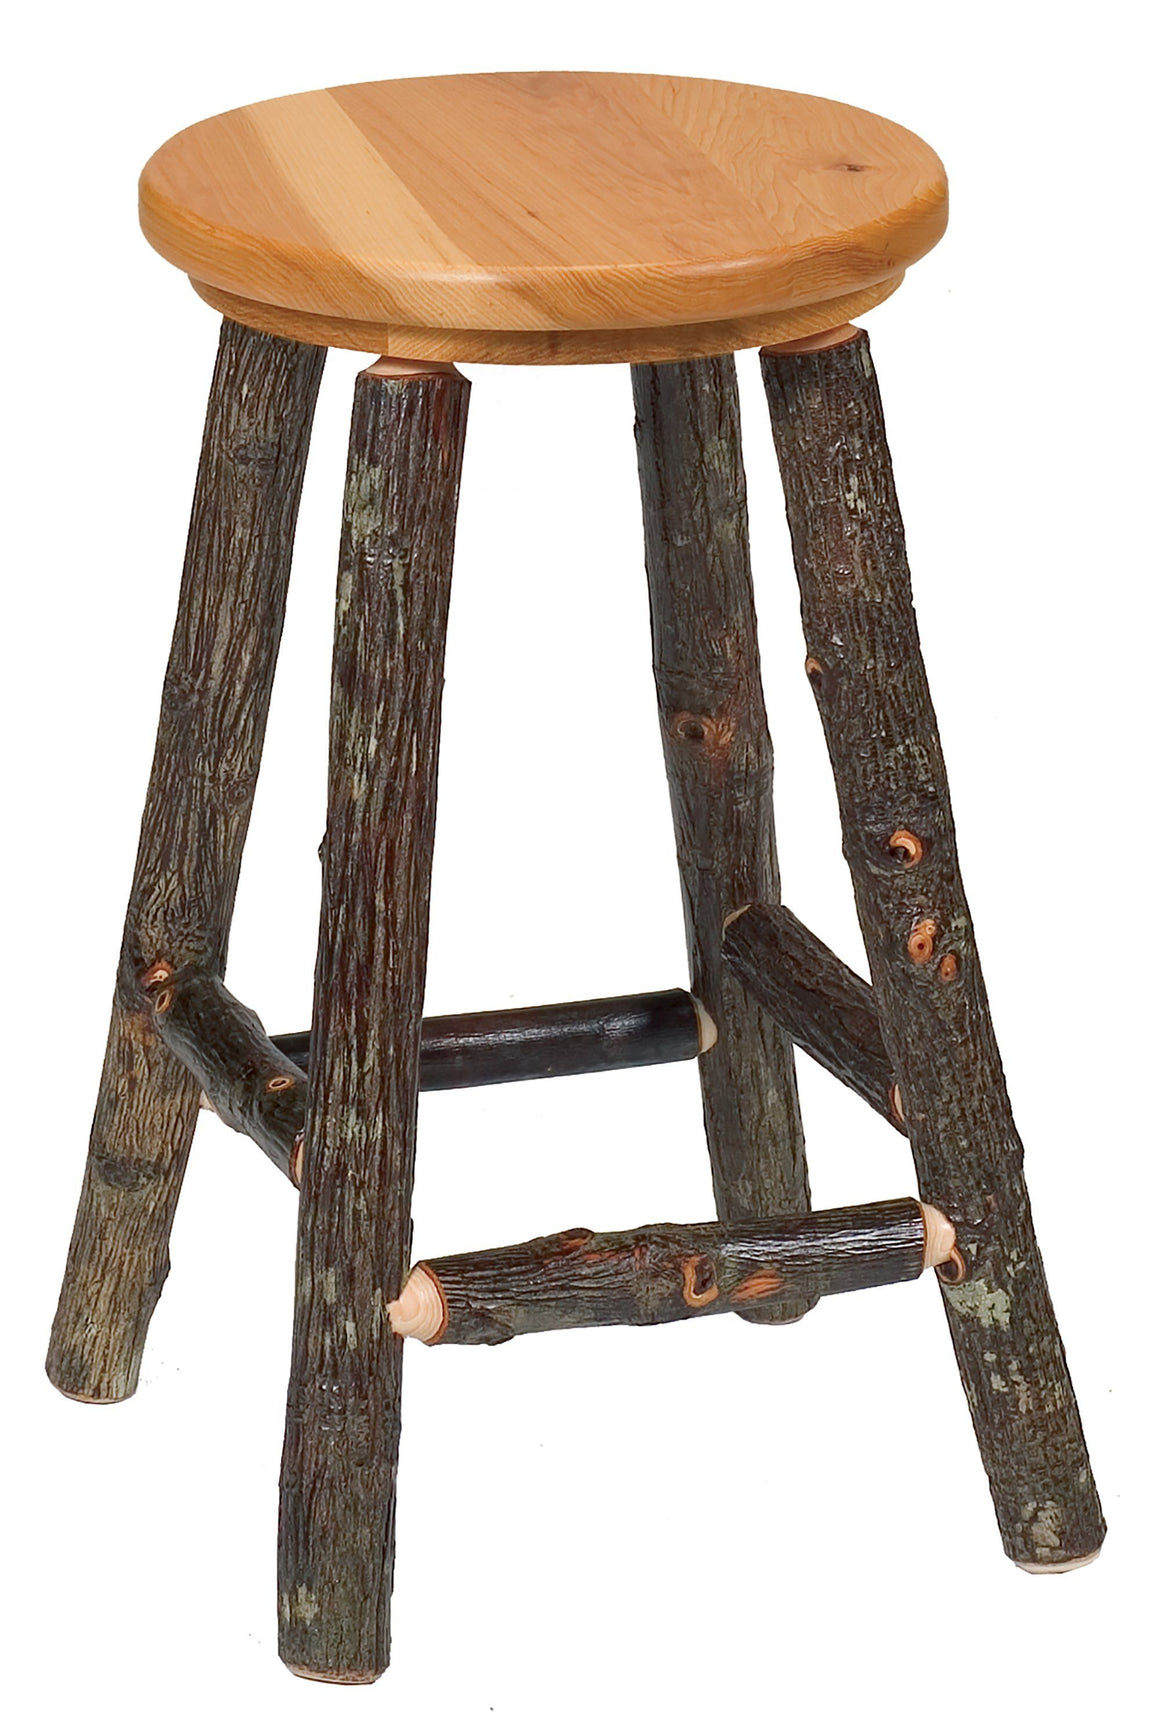 "Natural Hickory Log Round Counter Stool - 24"" high - Wood Seat - (Non-Swivel) - Rustic Deco Incorporated"